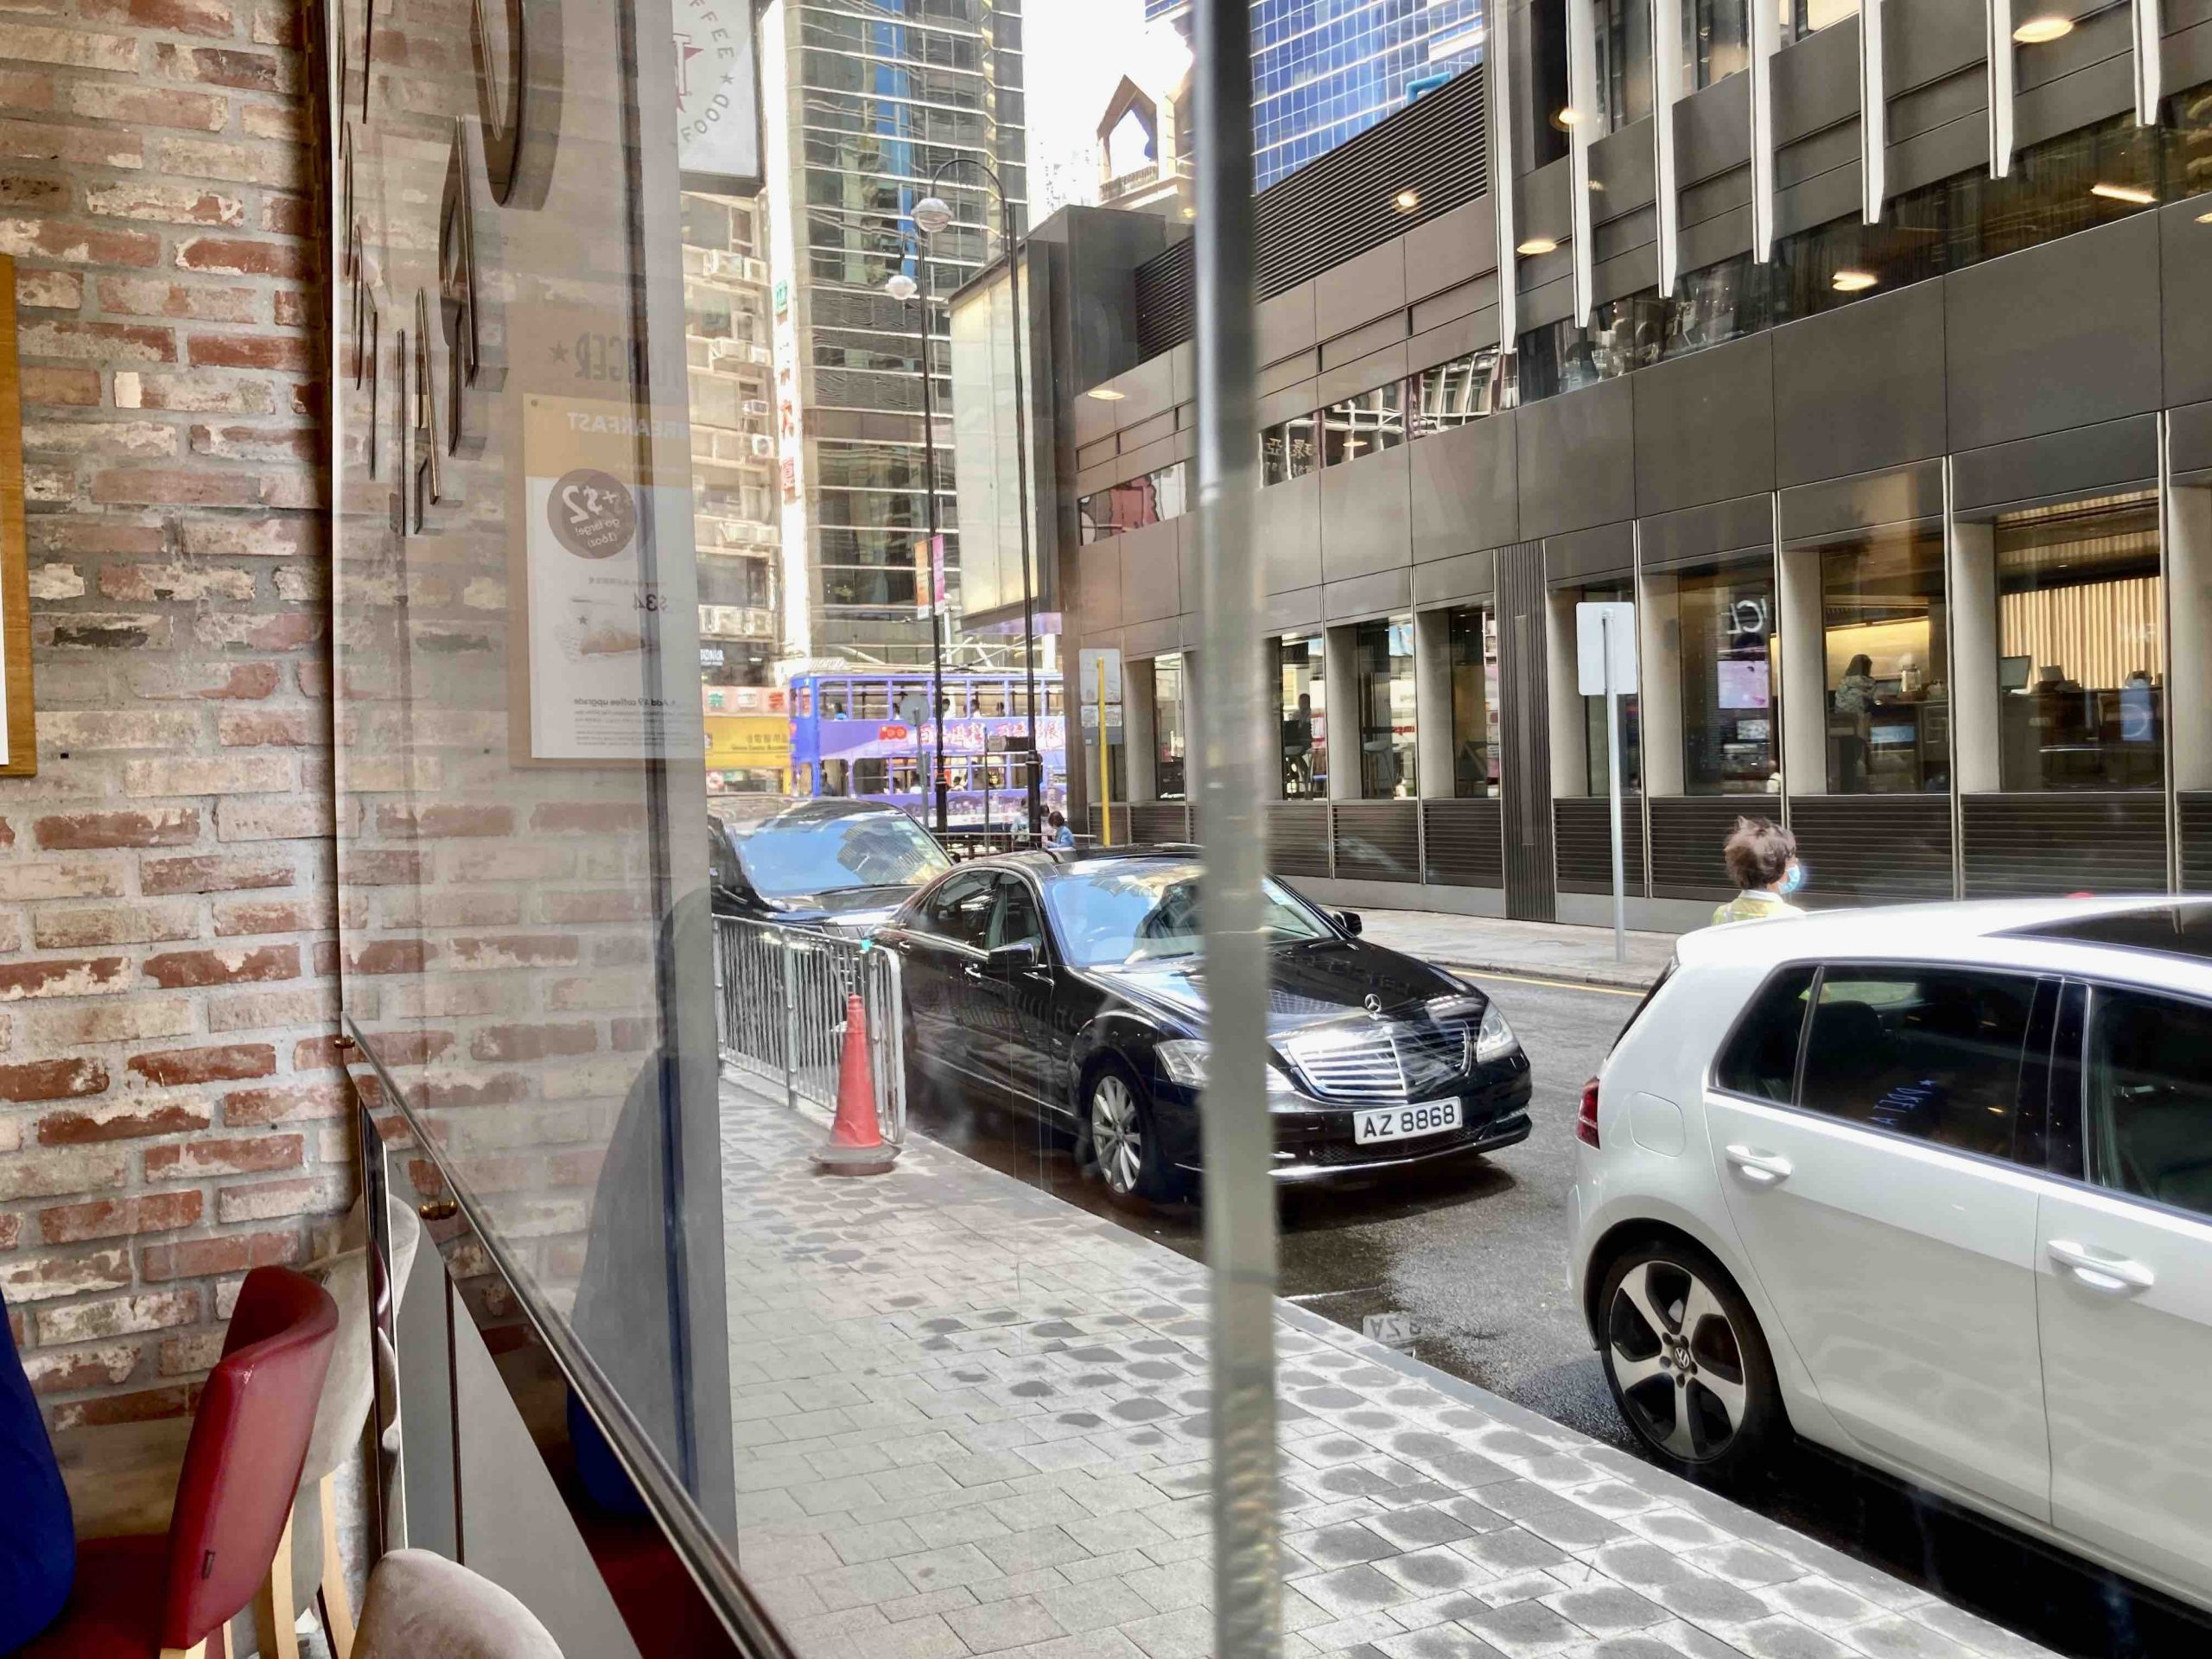 HK Office District Restaurant for Rent in Central